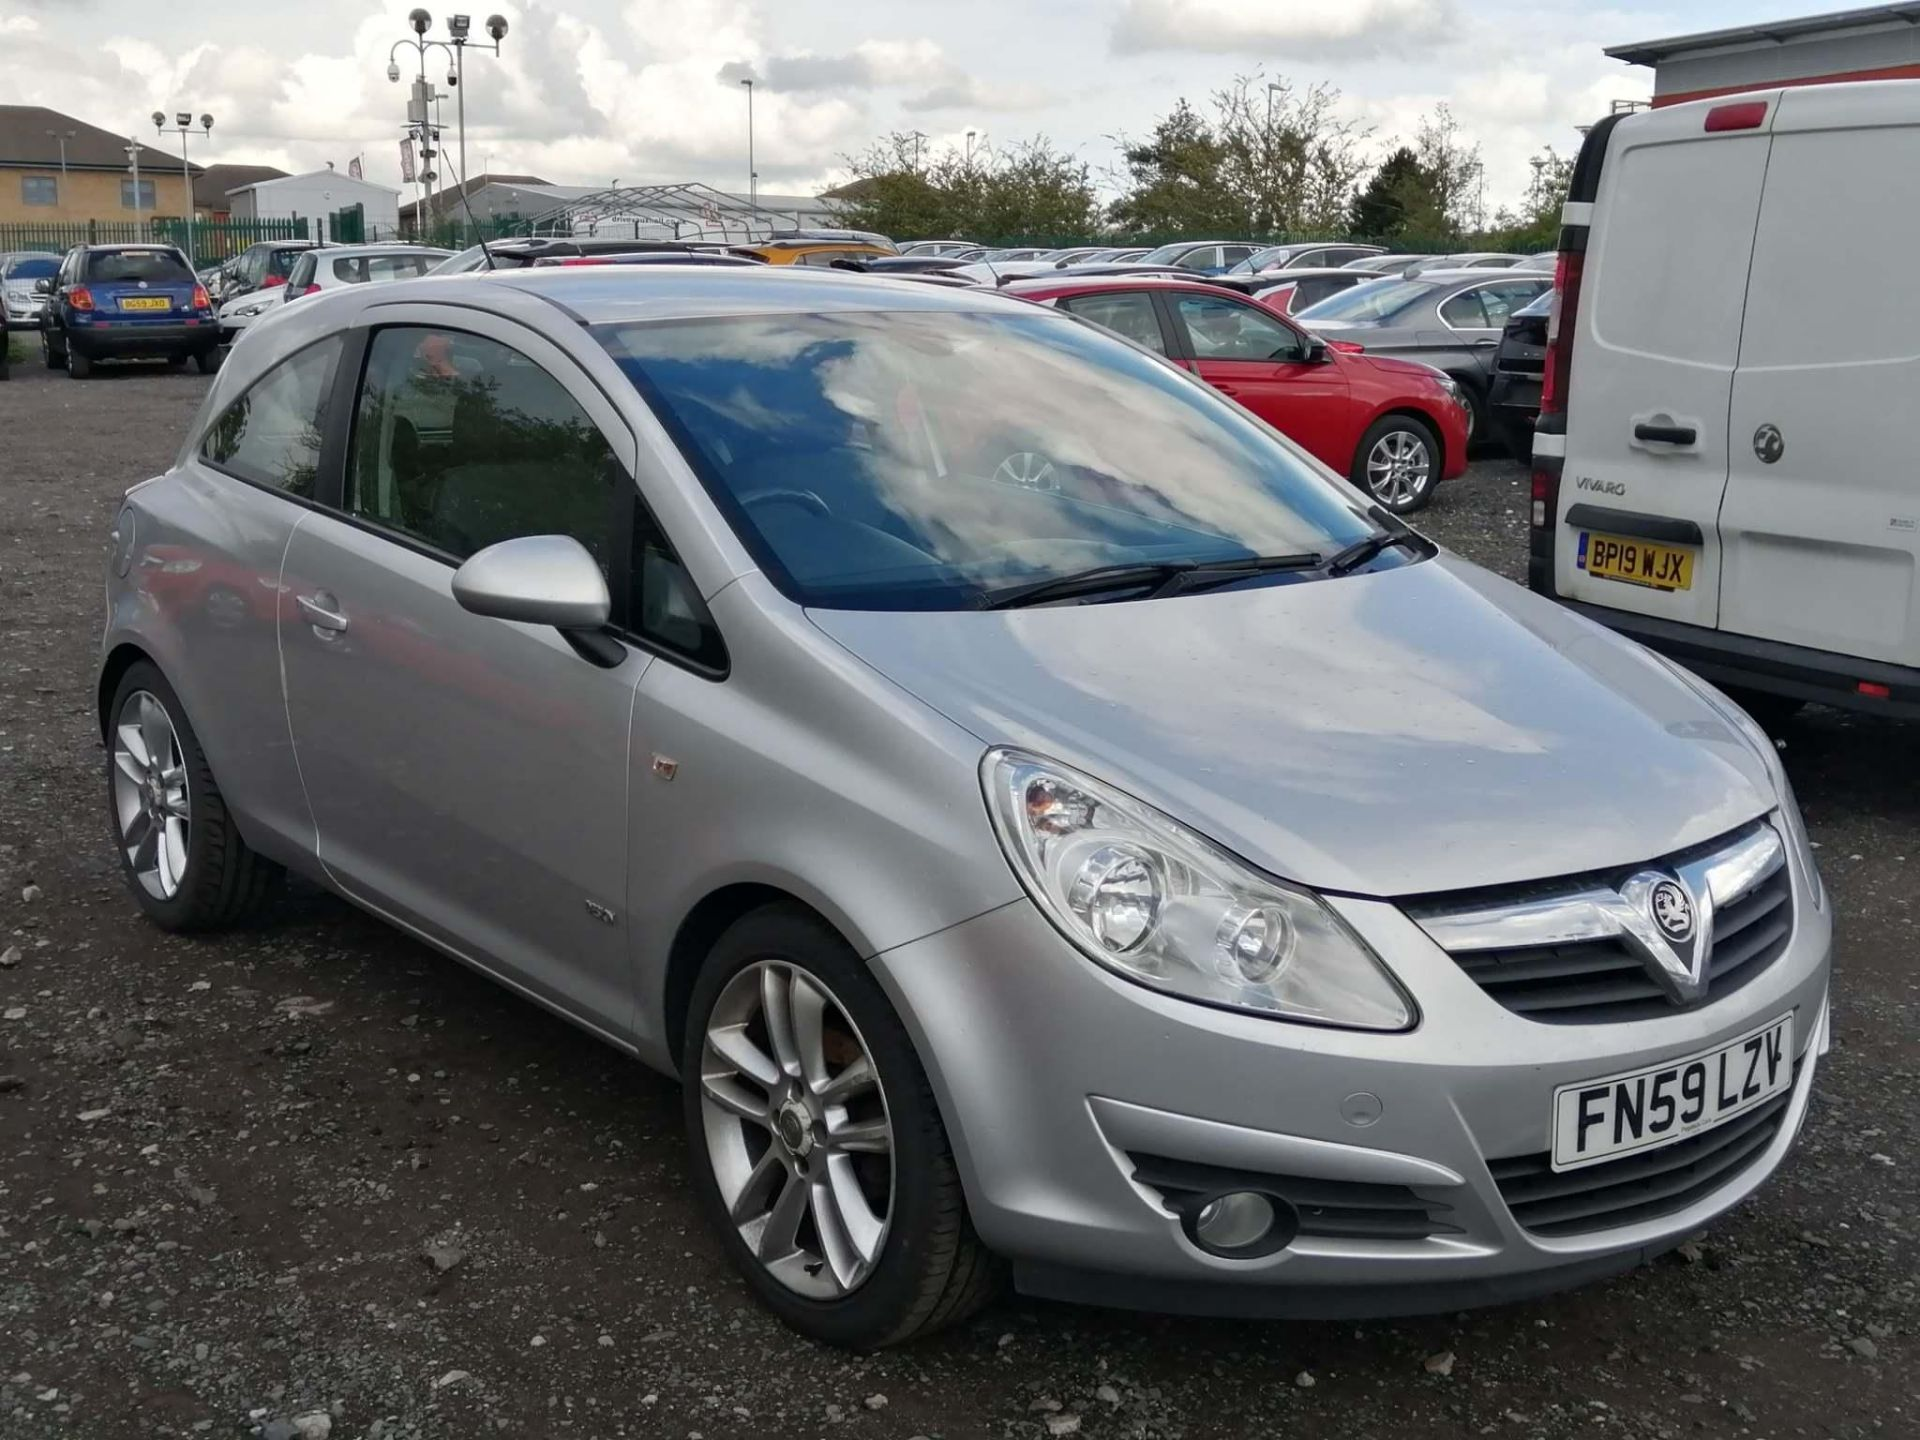 2010 Vauxhall Corsa 1.2 Design 3dr Hatchback - CL505 - NO VAT ON THE HAMMER - Location: Corby